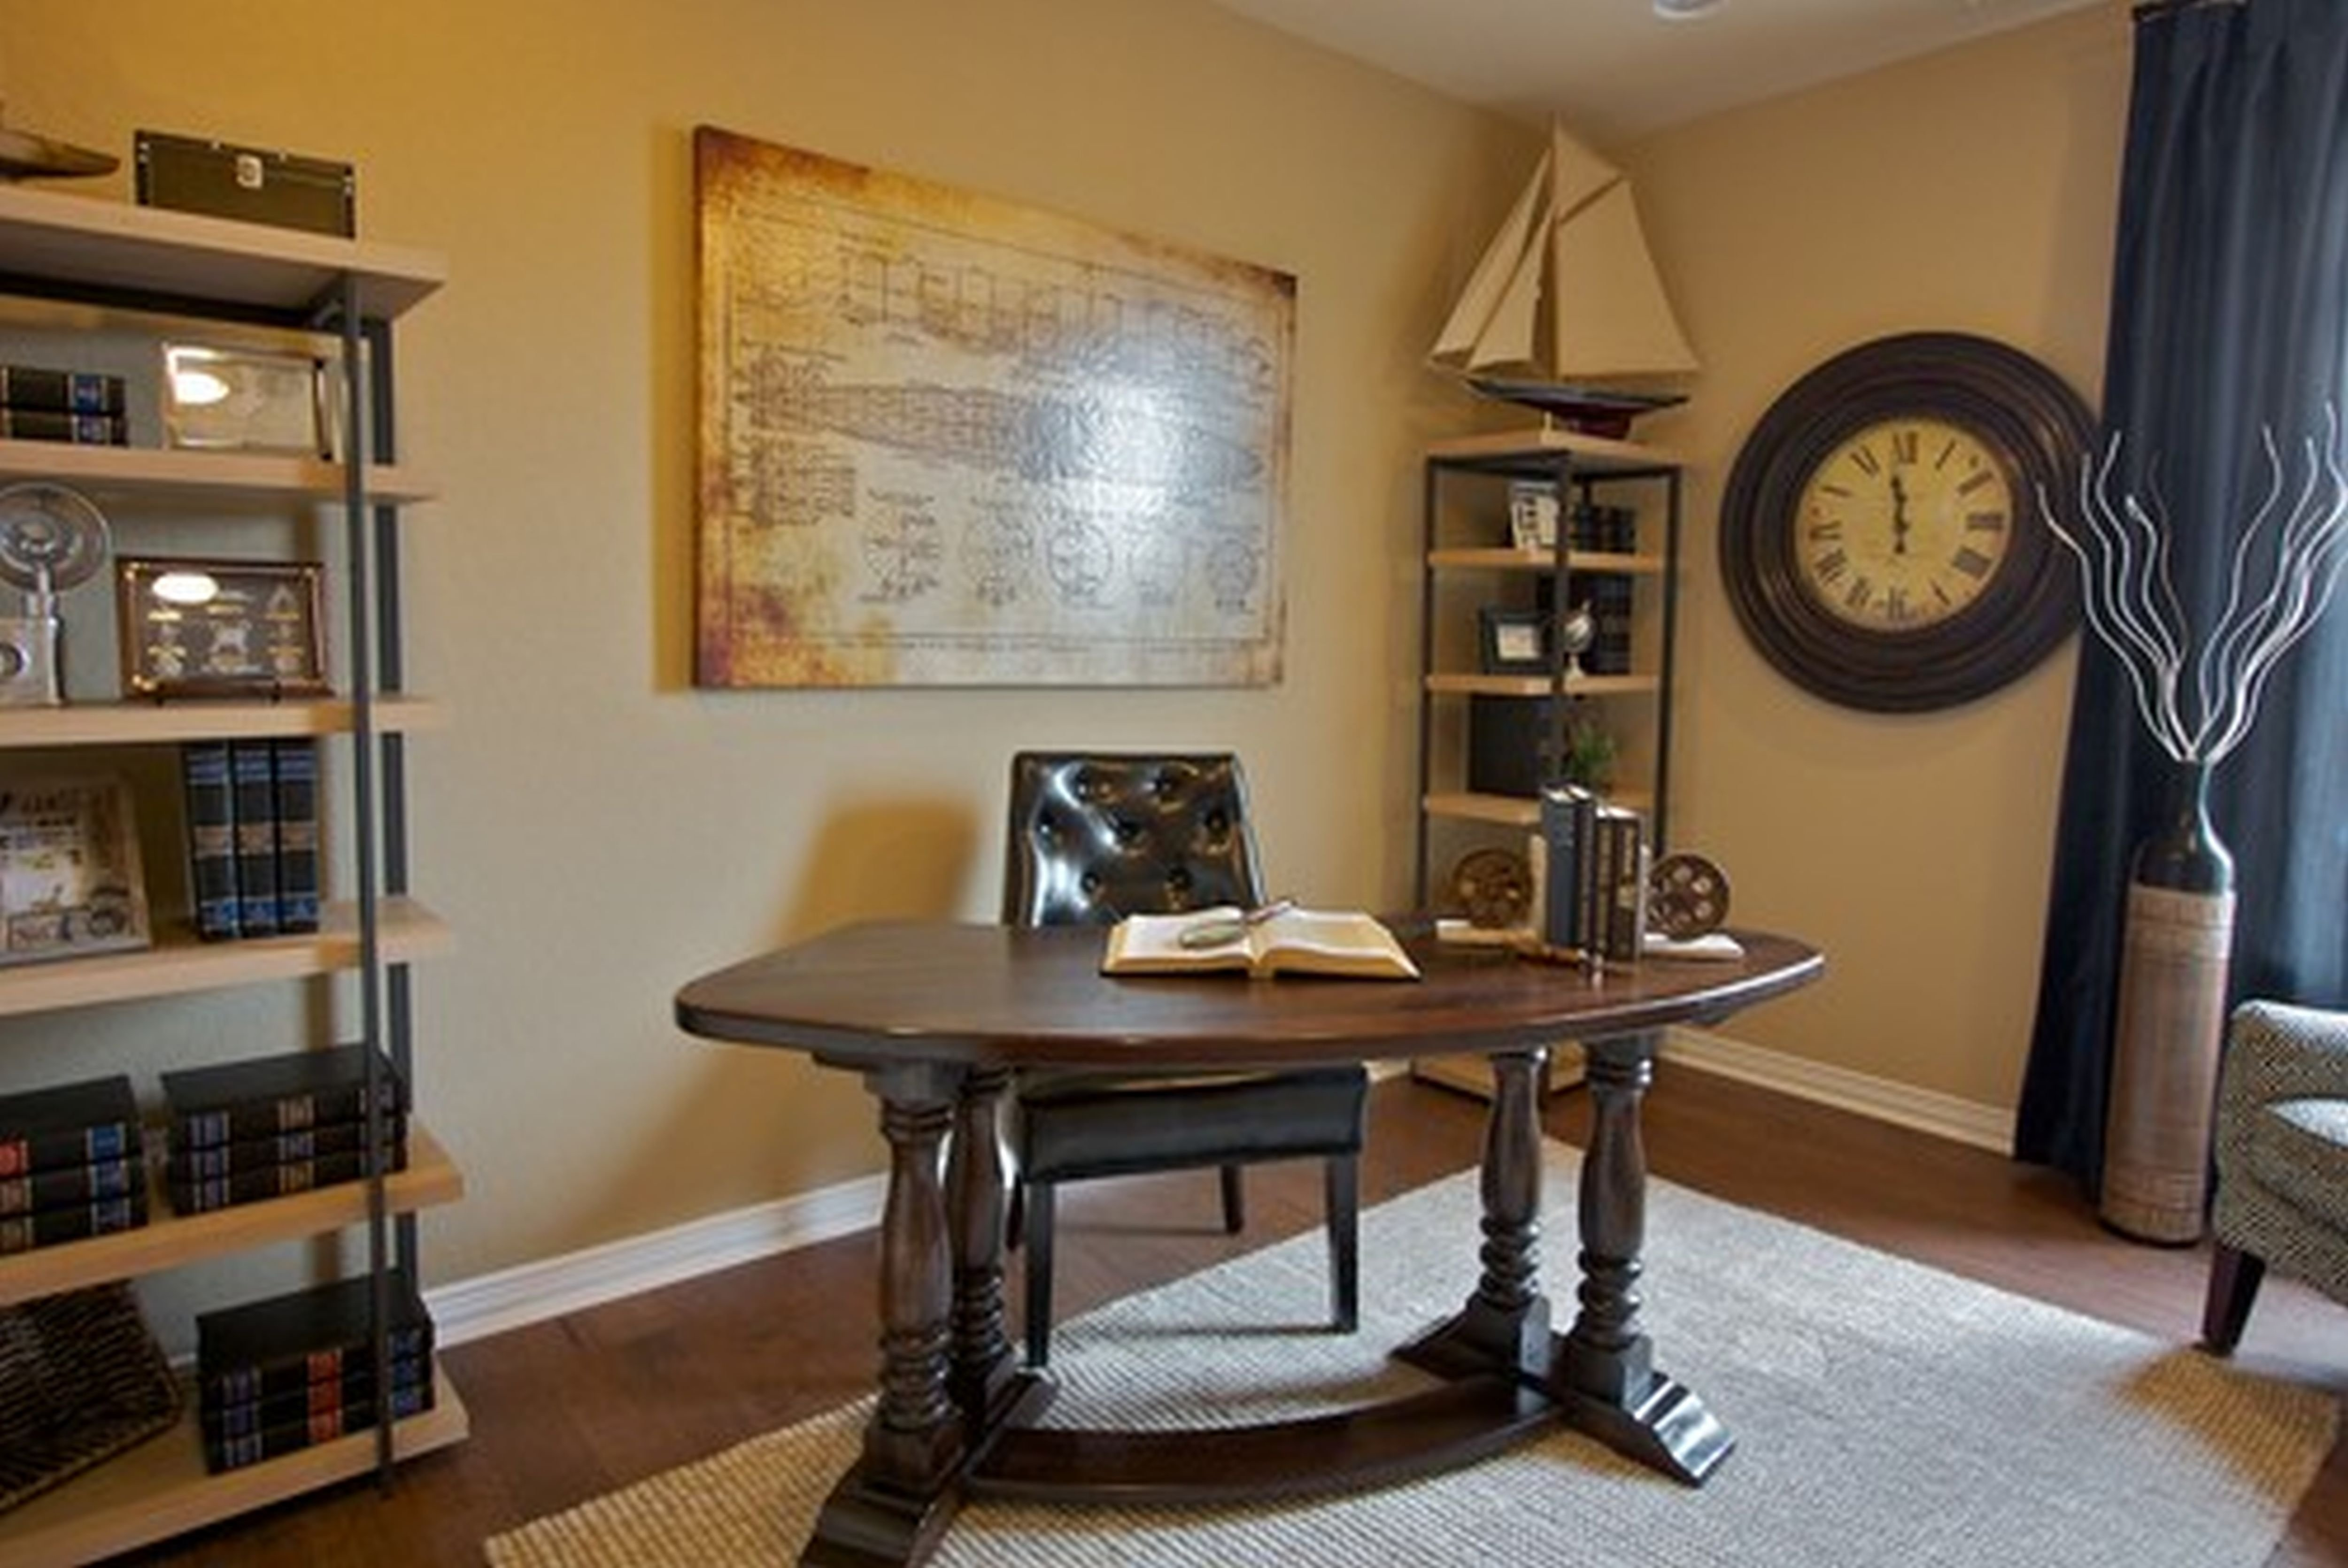 10 Attractive Office Decorating Ideas For Men stunning design ideas mens office decor innovative emejing home for